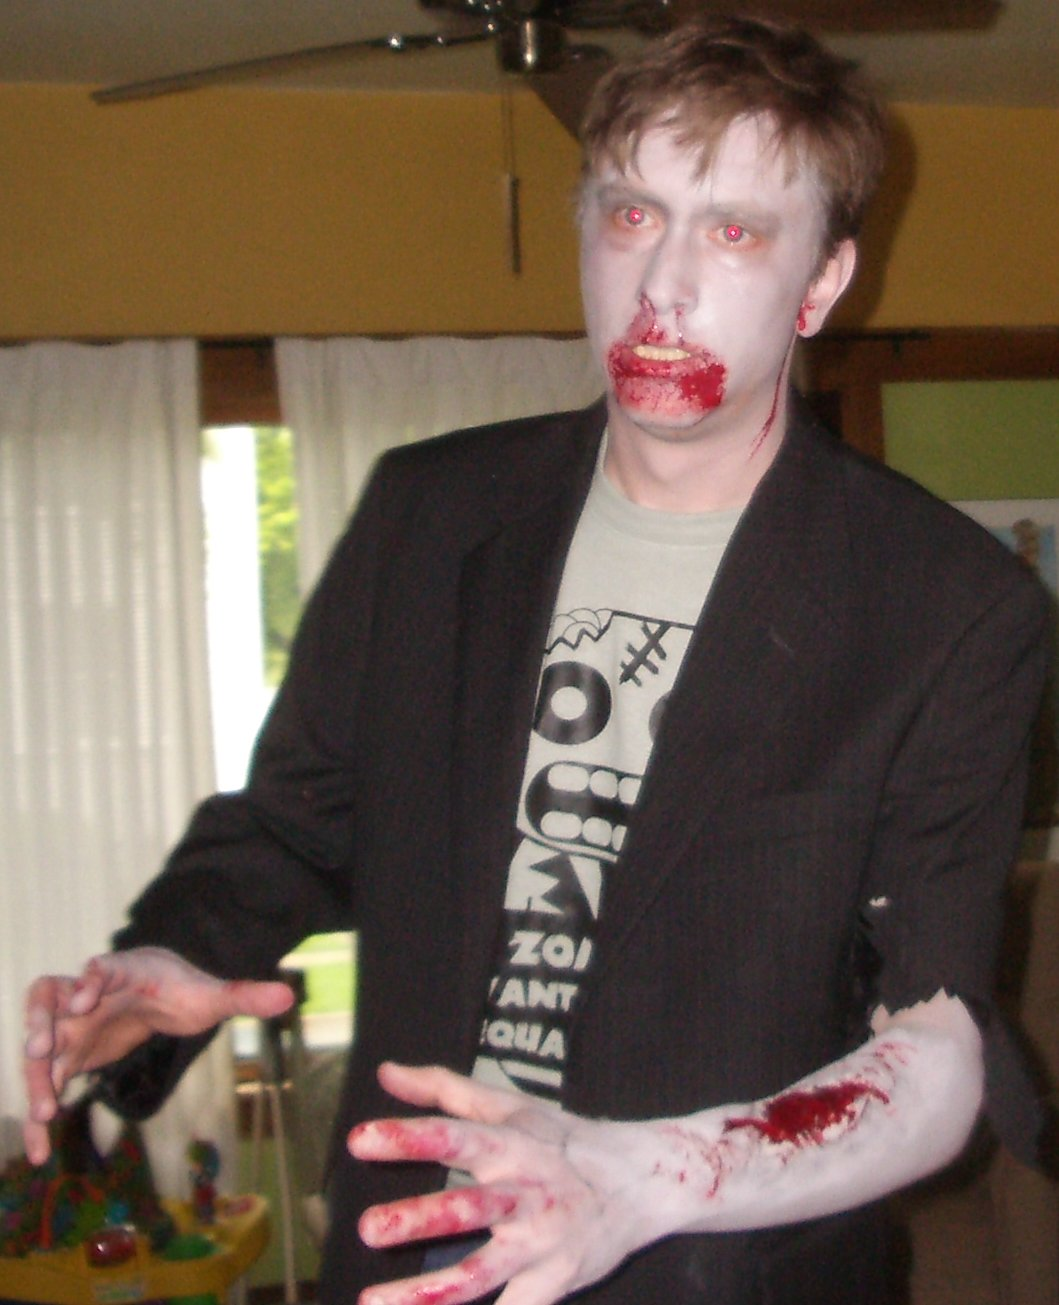 Color photo of a zombie with bloody hands, mouth, and ears.